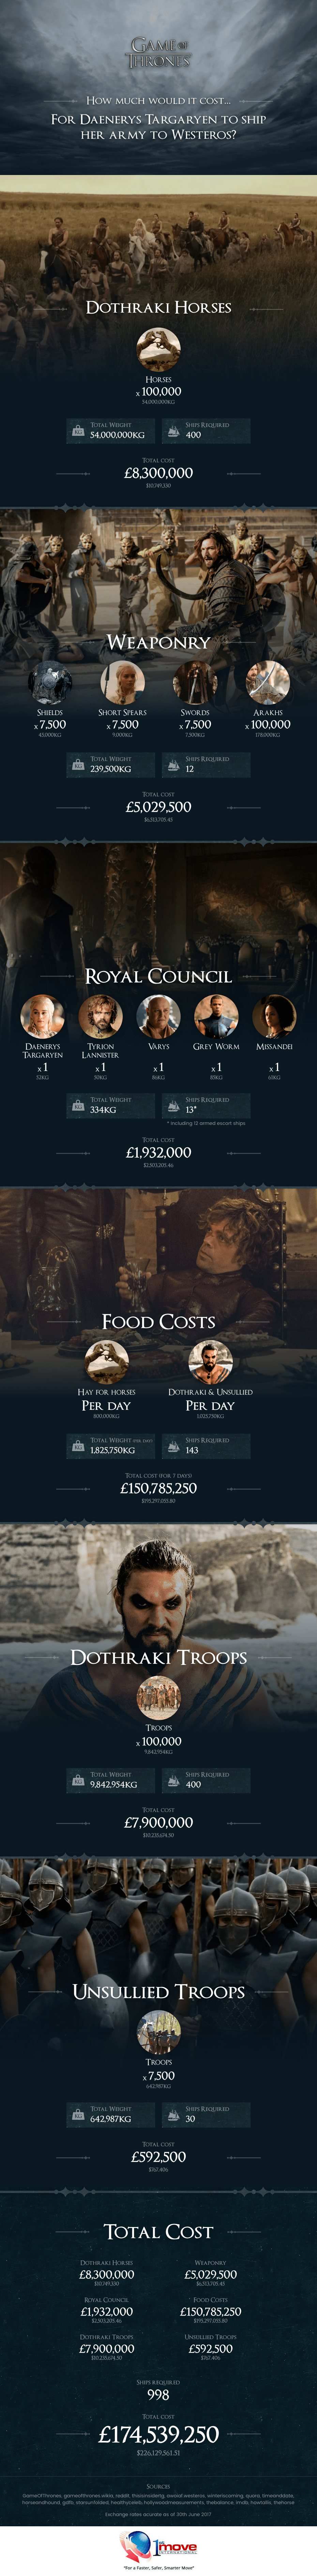 Game of Thrones: How Much to Ship Daenerys' Army? infographic